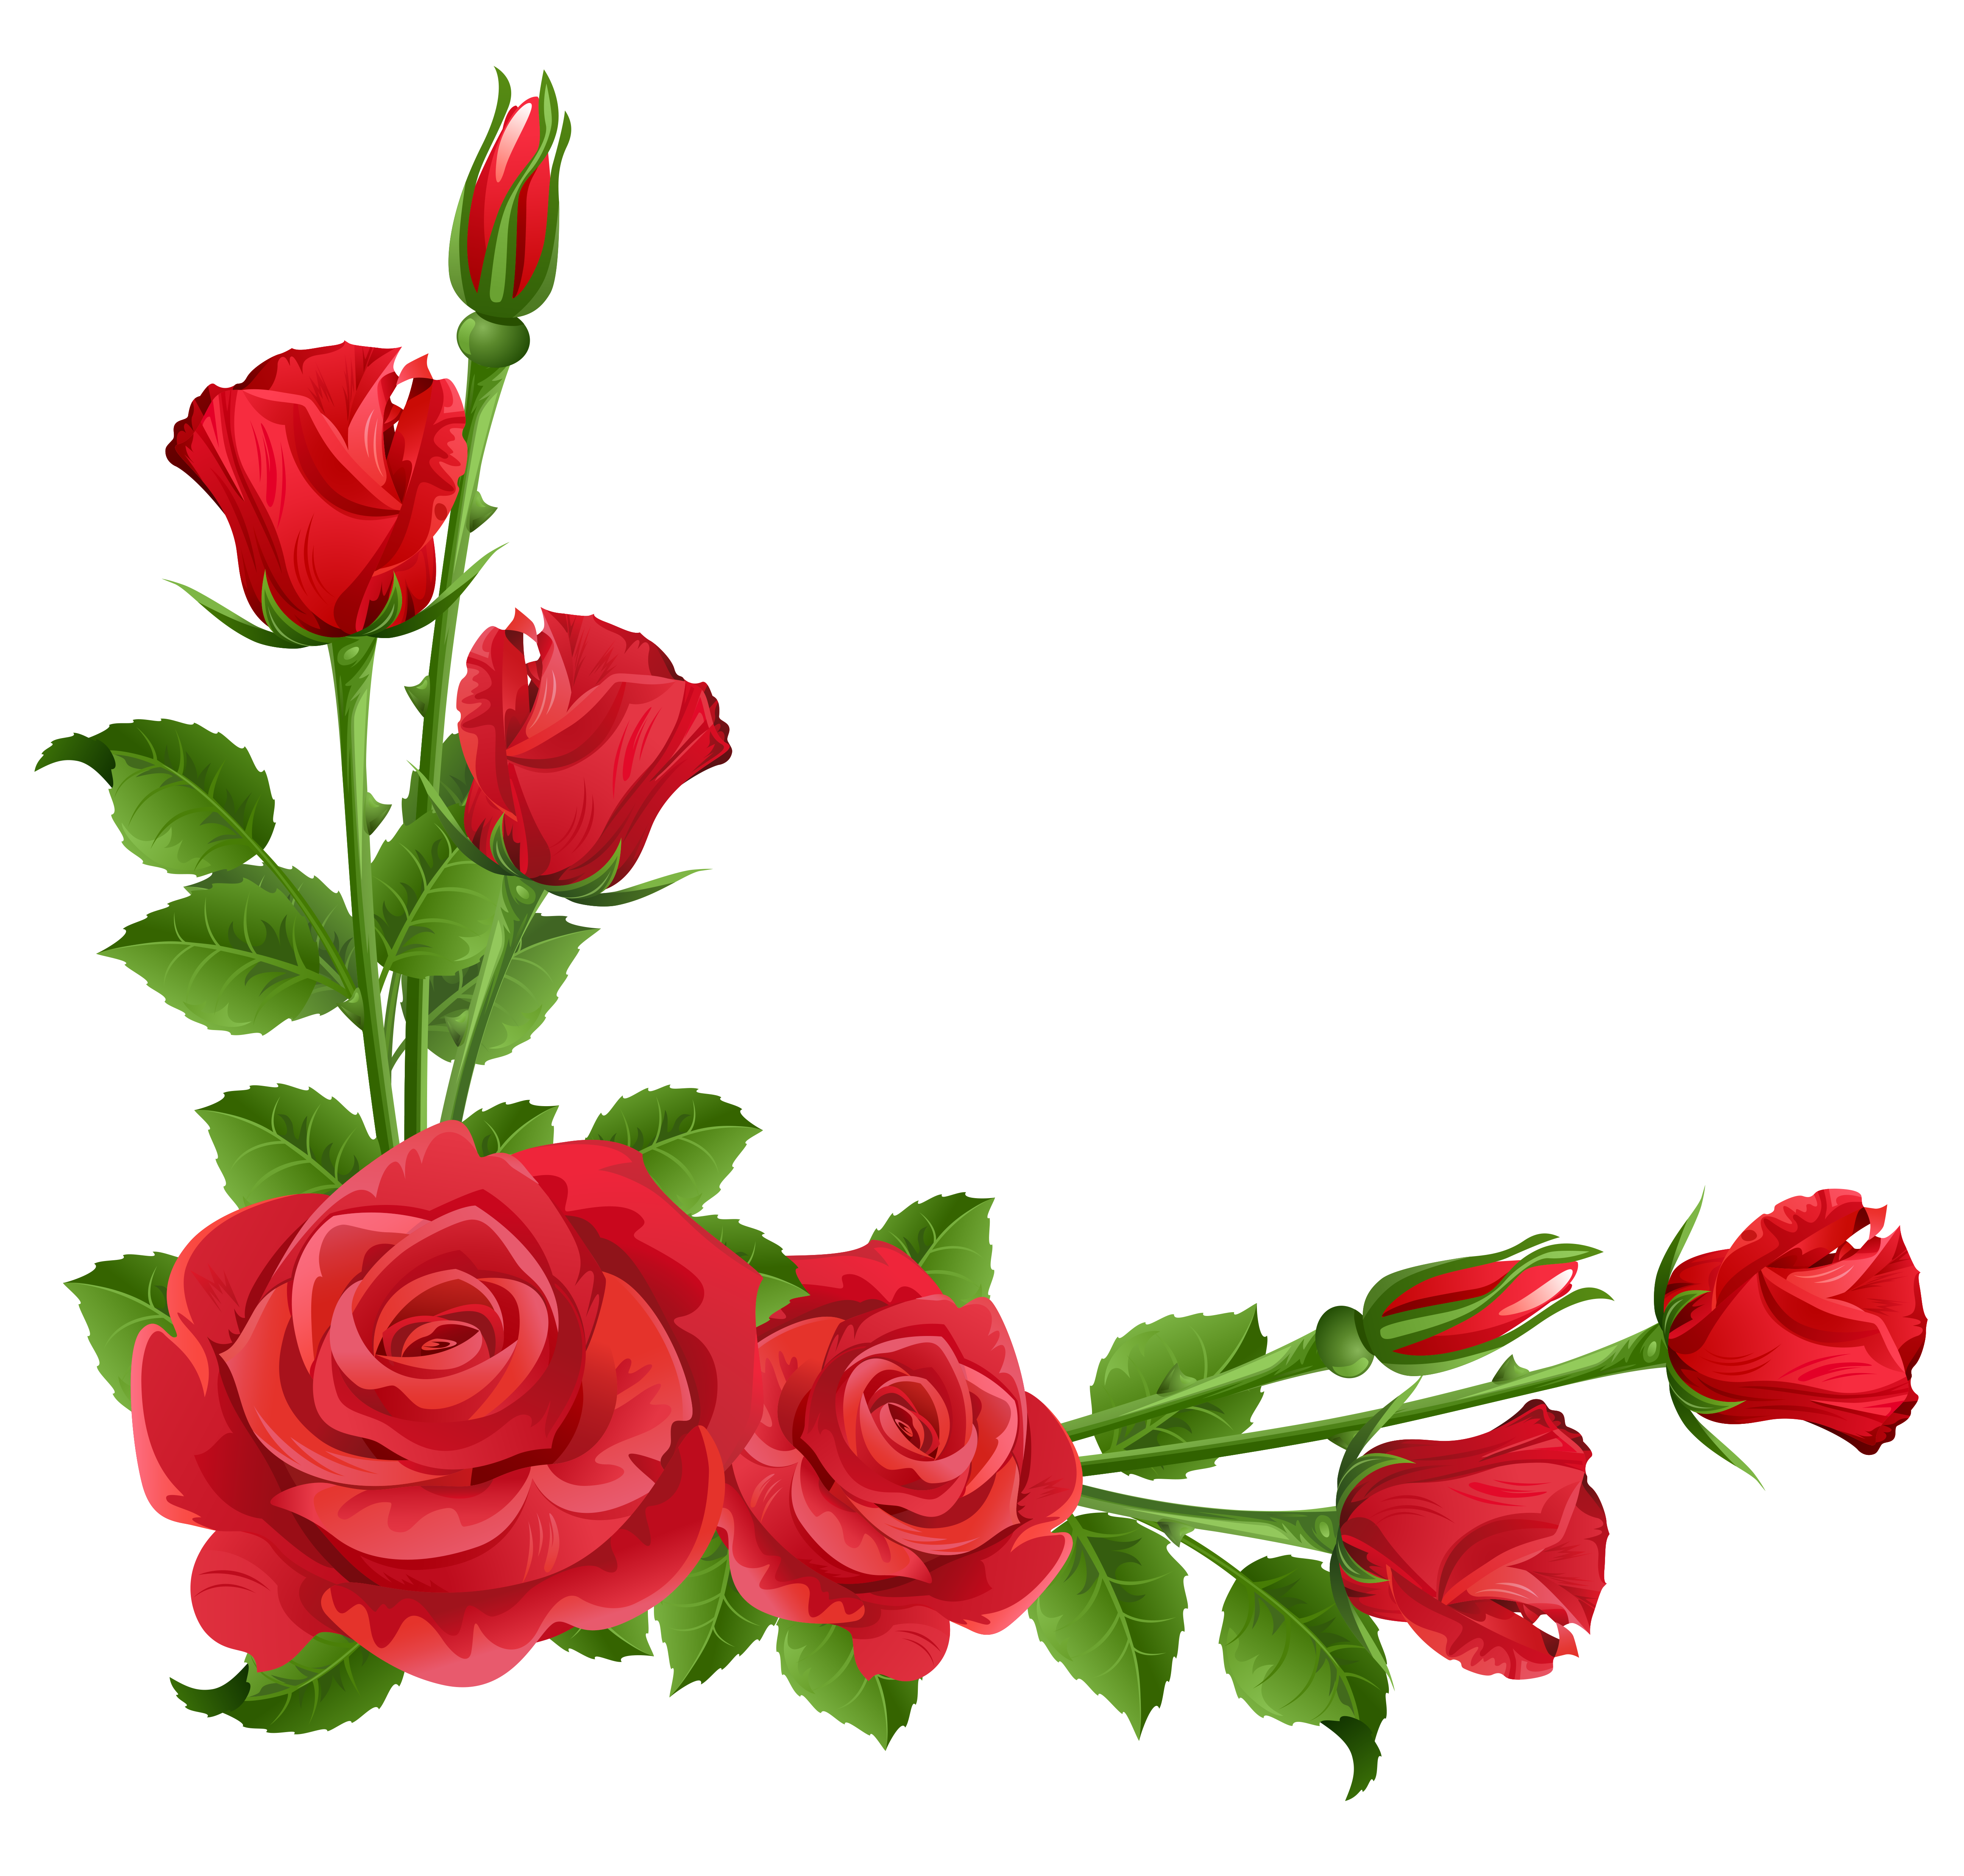 rose vector png | free download best rose vector png on clipartmag